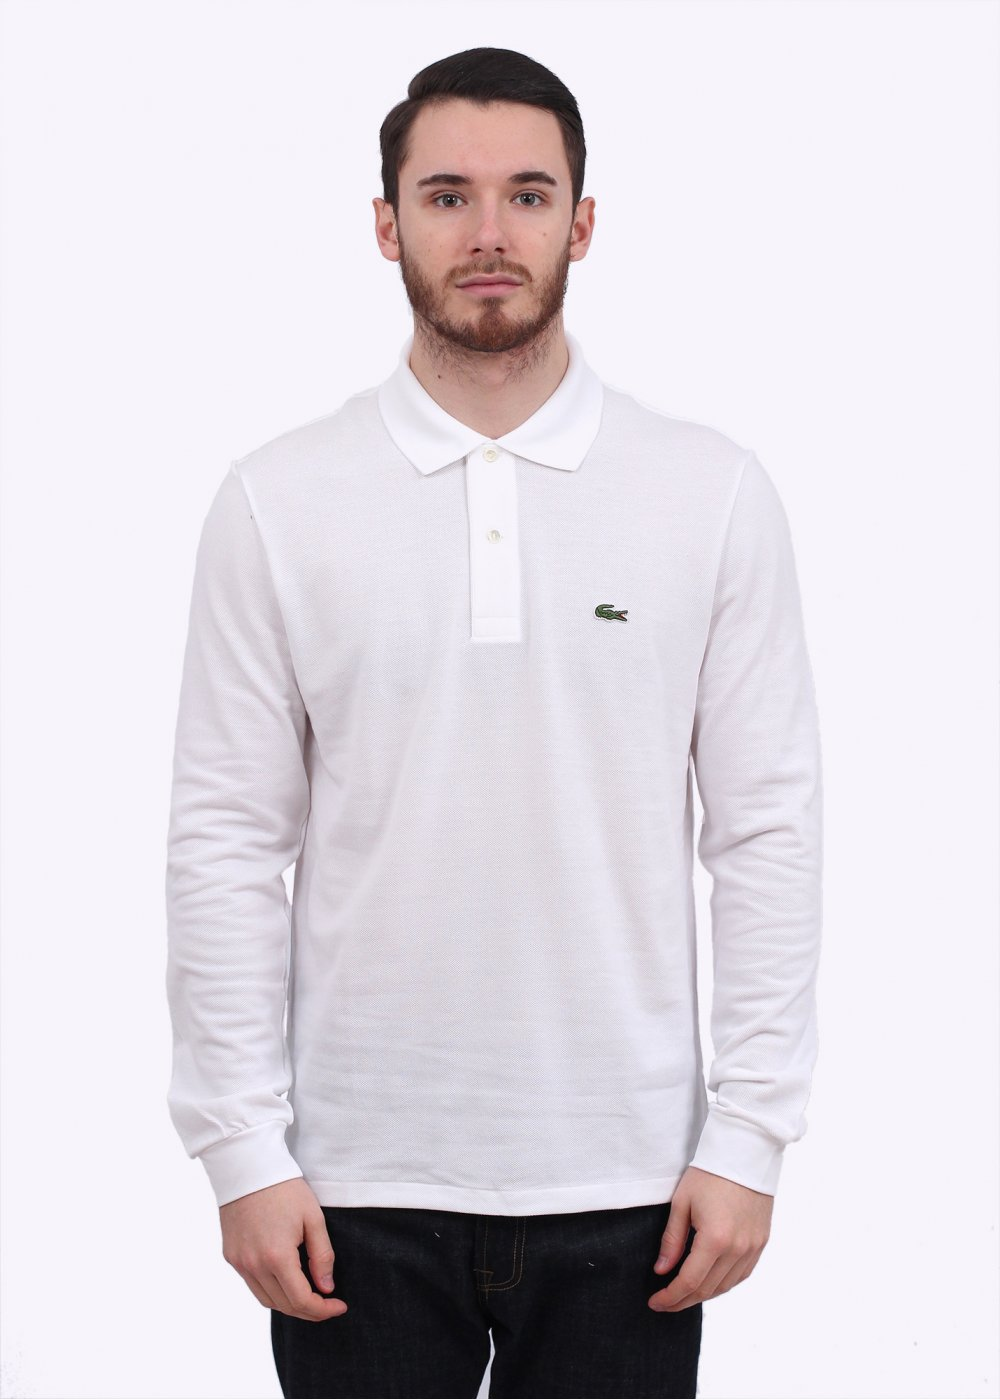 lacoste long sleeve polo shirt white. Black Bedroom Furniture Sets. Home Design Ideas